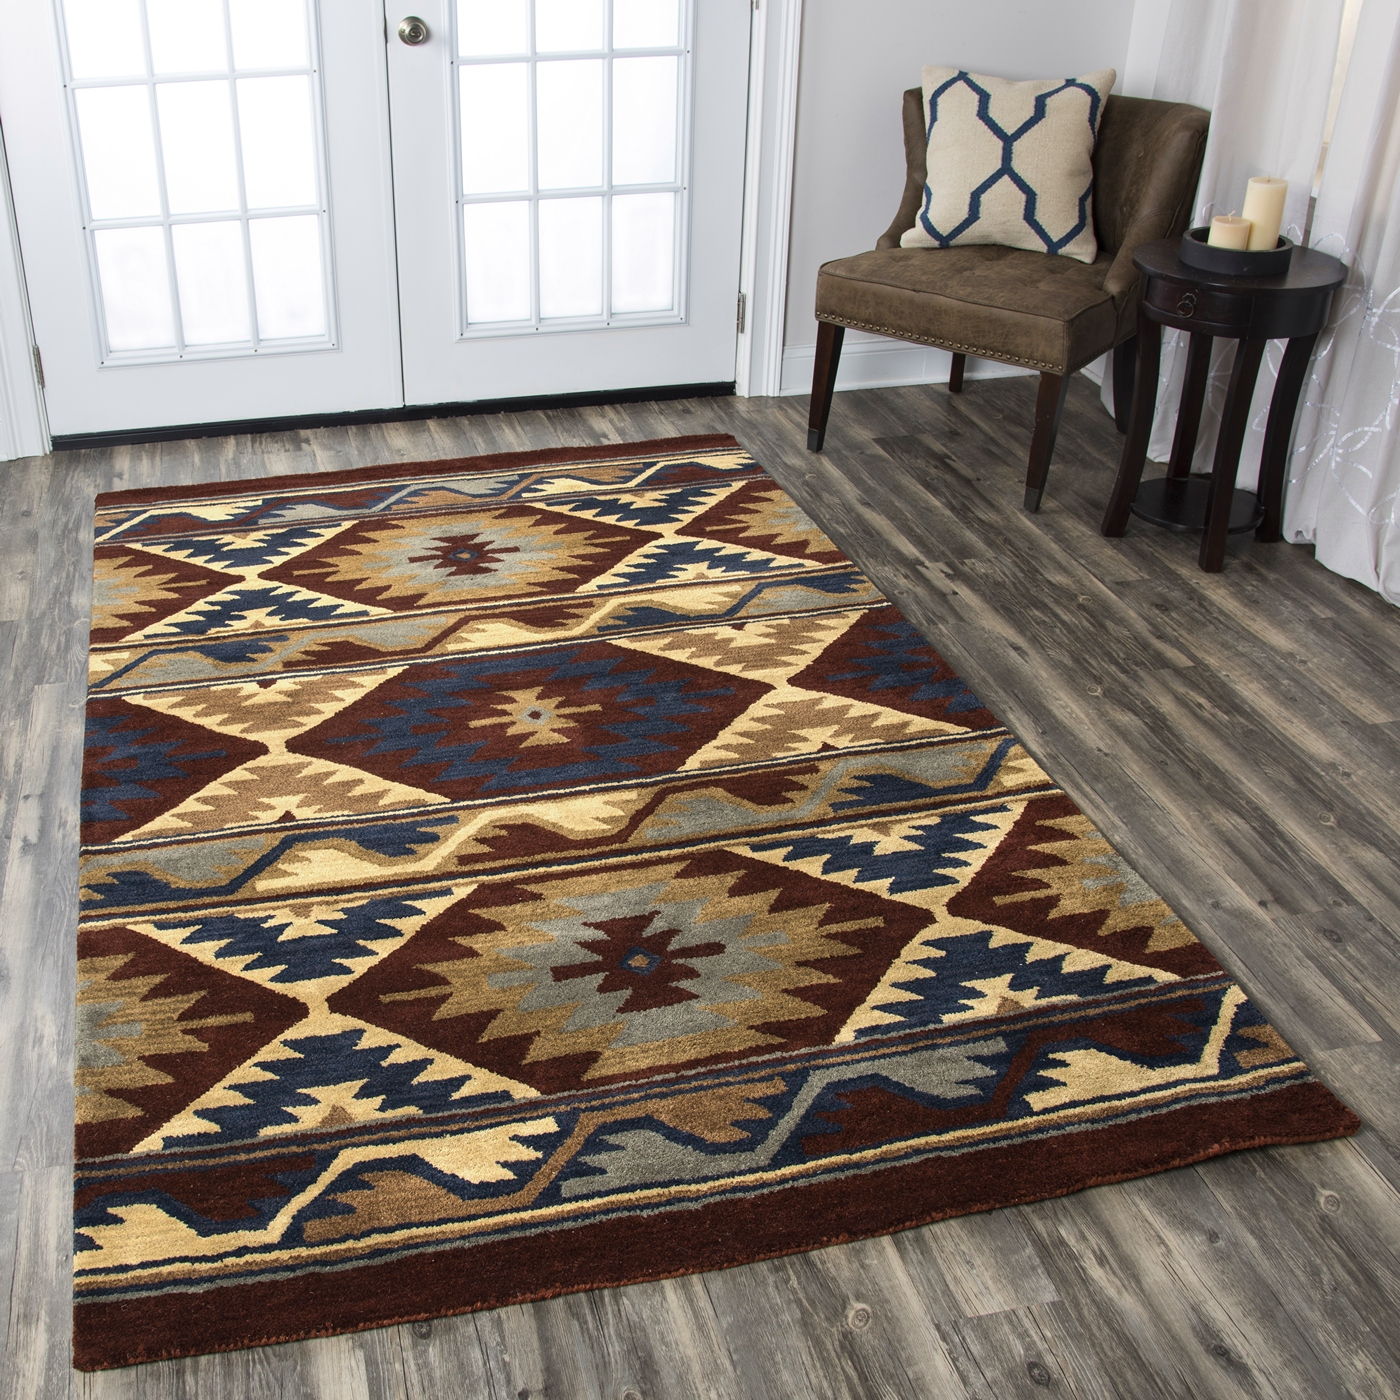 Southwest Southwest Motif Wool Area Rug In Red Navy Gray